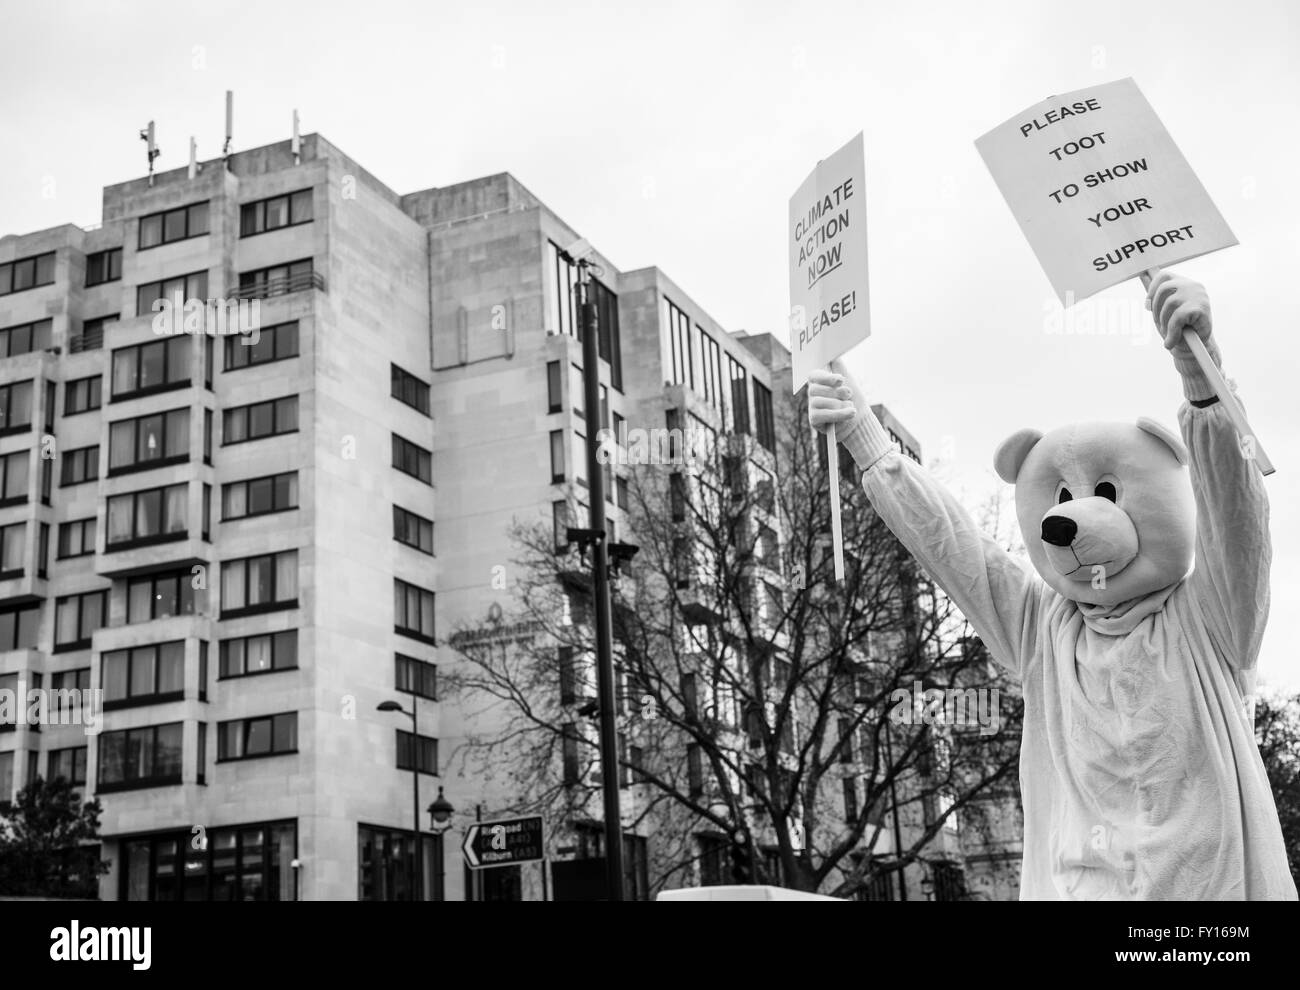 Protester dressed up like a polar bear to support the campaign against climate change. Shot during the Climate March Stock Photo